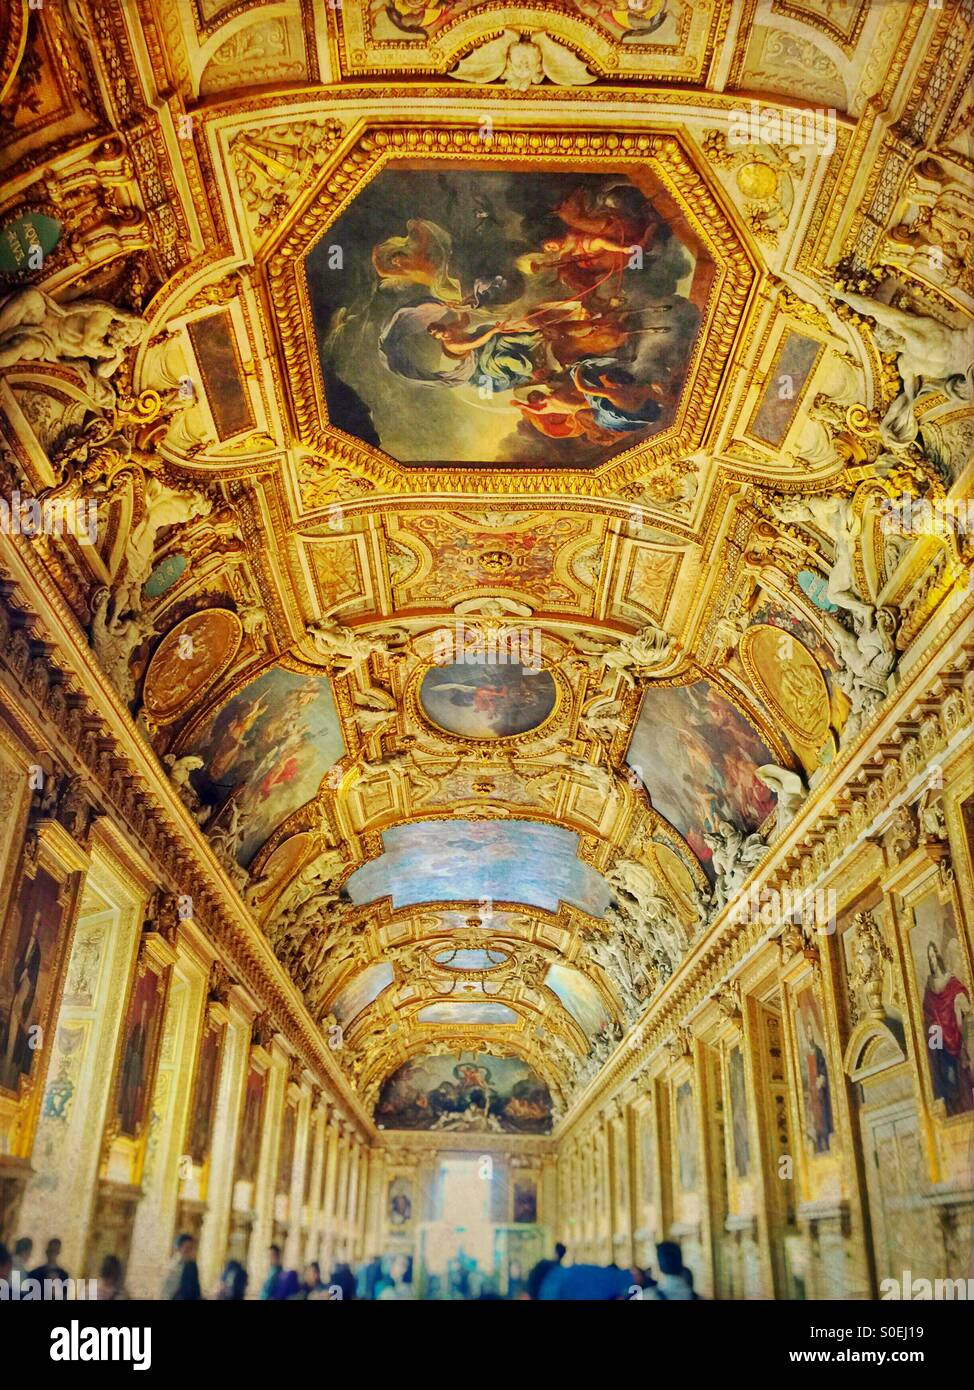 The golden Galerie d'Apollon famous for its high vaulted ceilings with painted decorations and stucco sculptures. Stock Photo